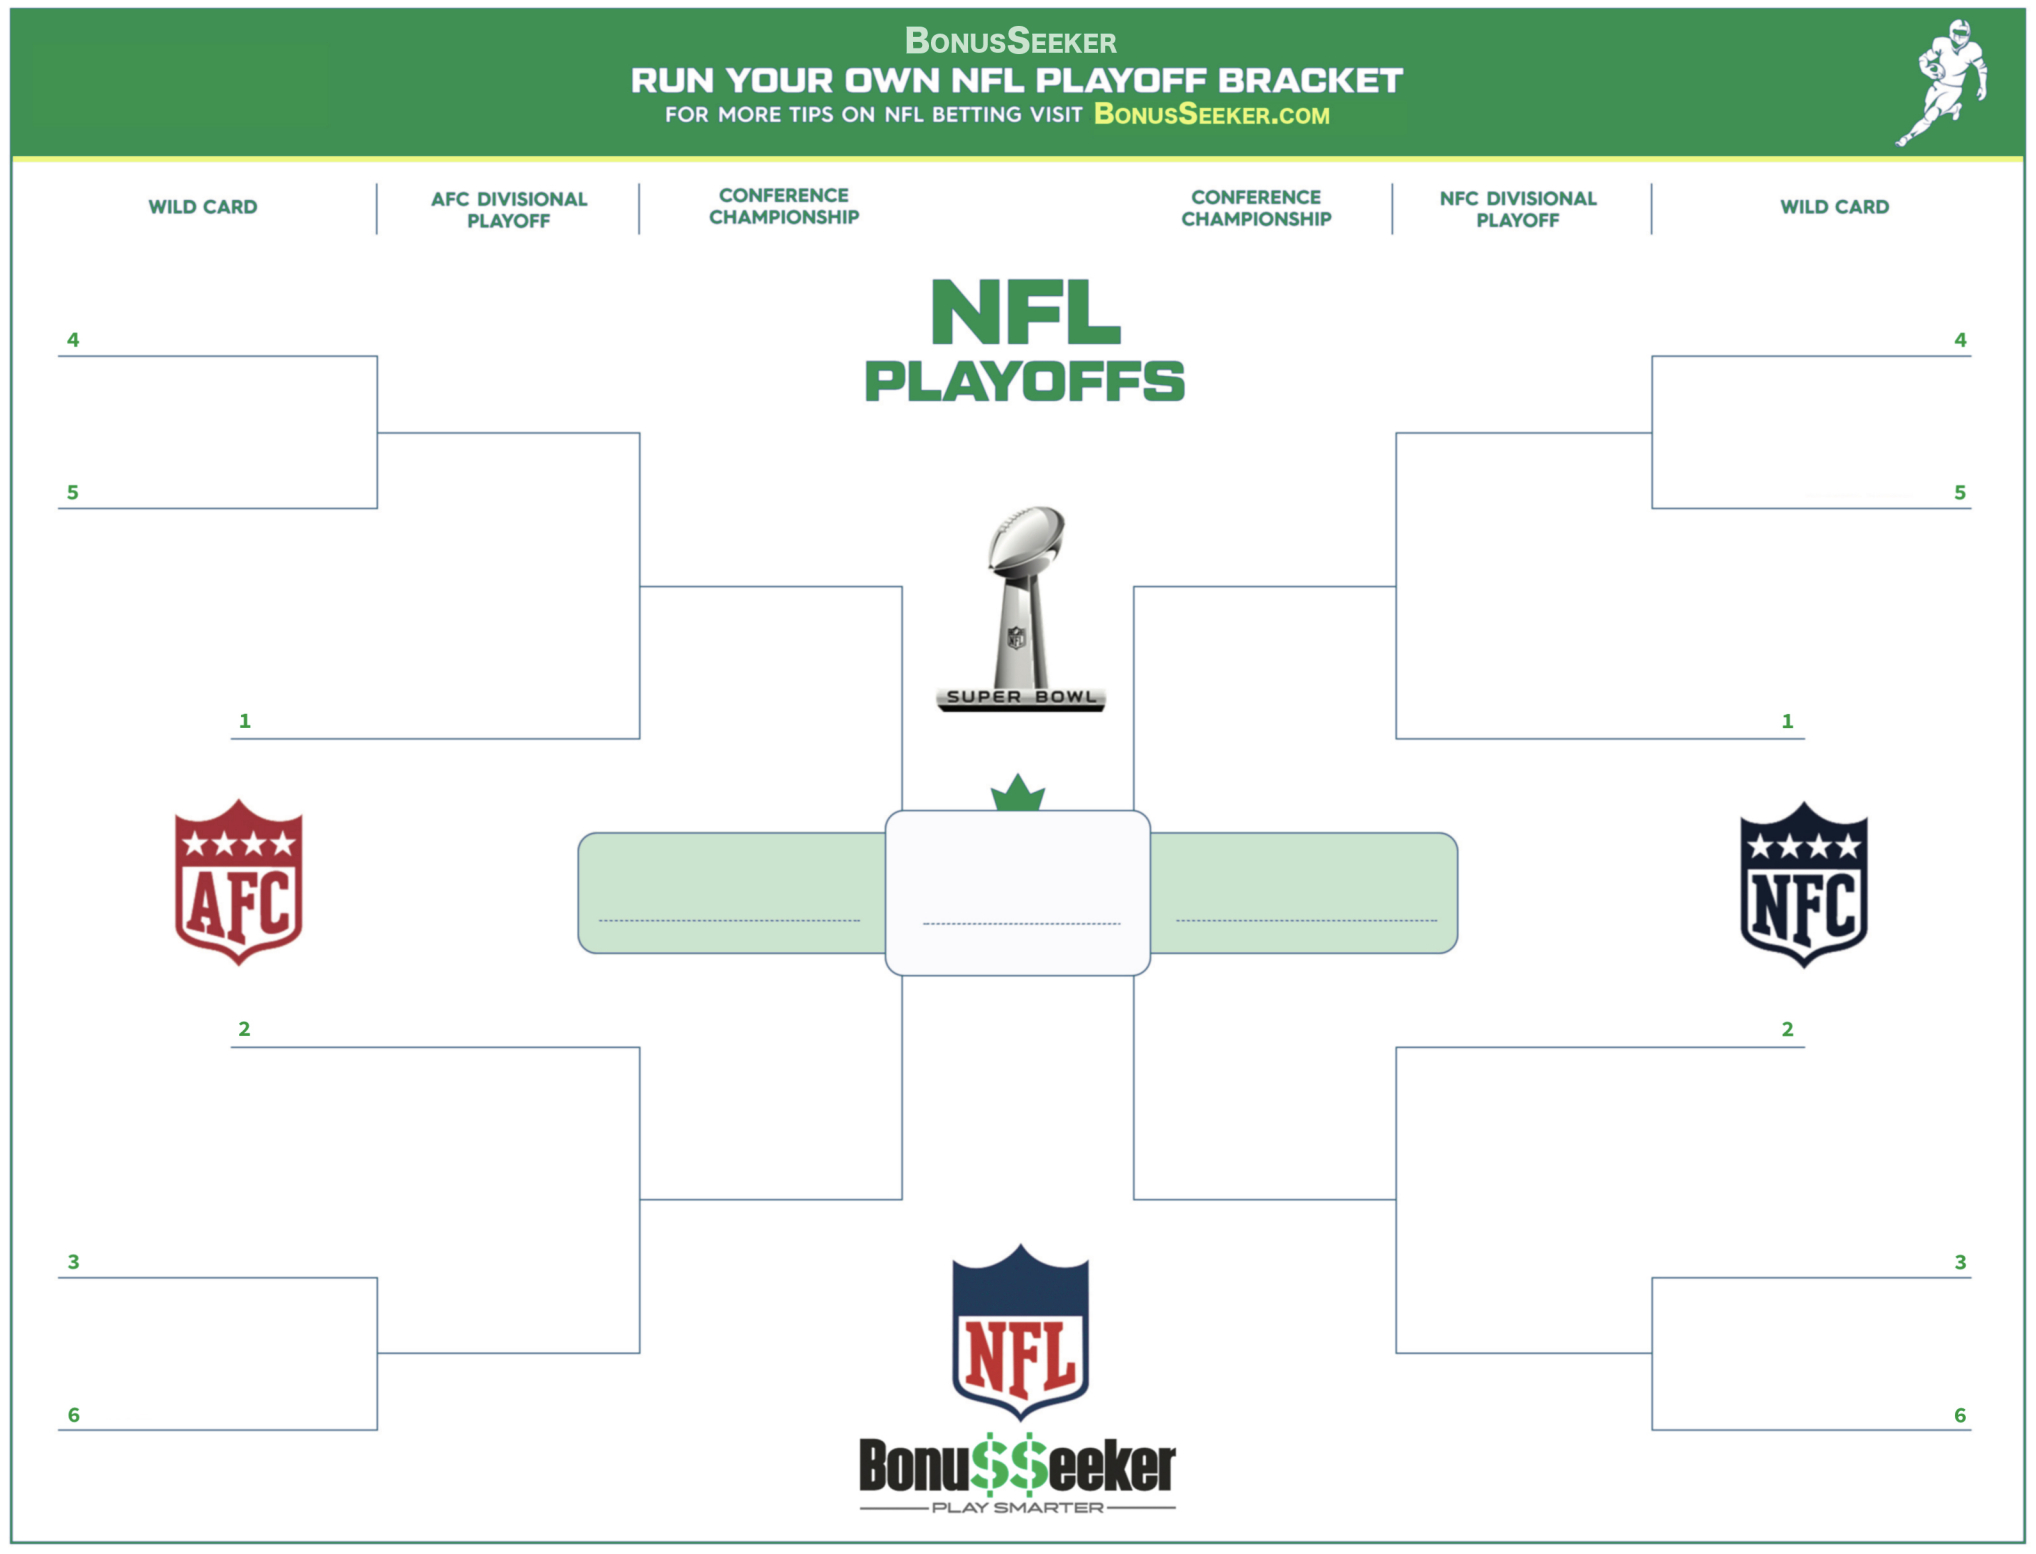 Nfl Playoff Bracket Contest - 2020 Betting Challenge for Free Printable Nfl Schedule 2020 2020